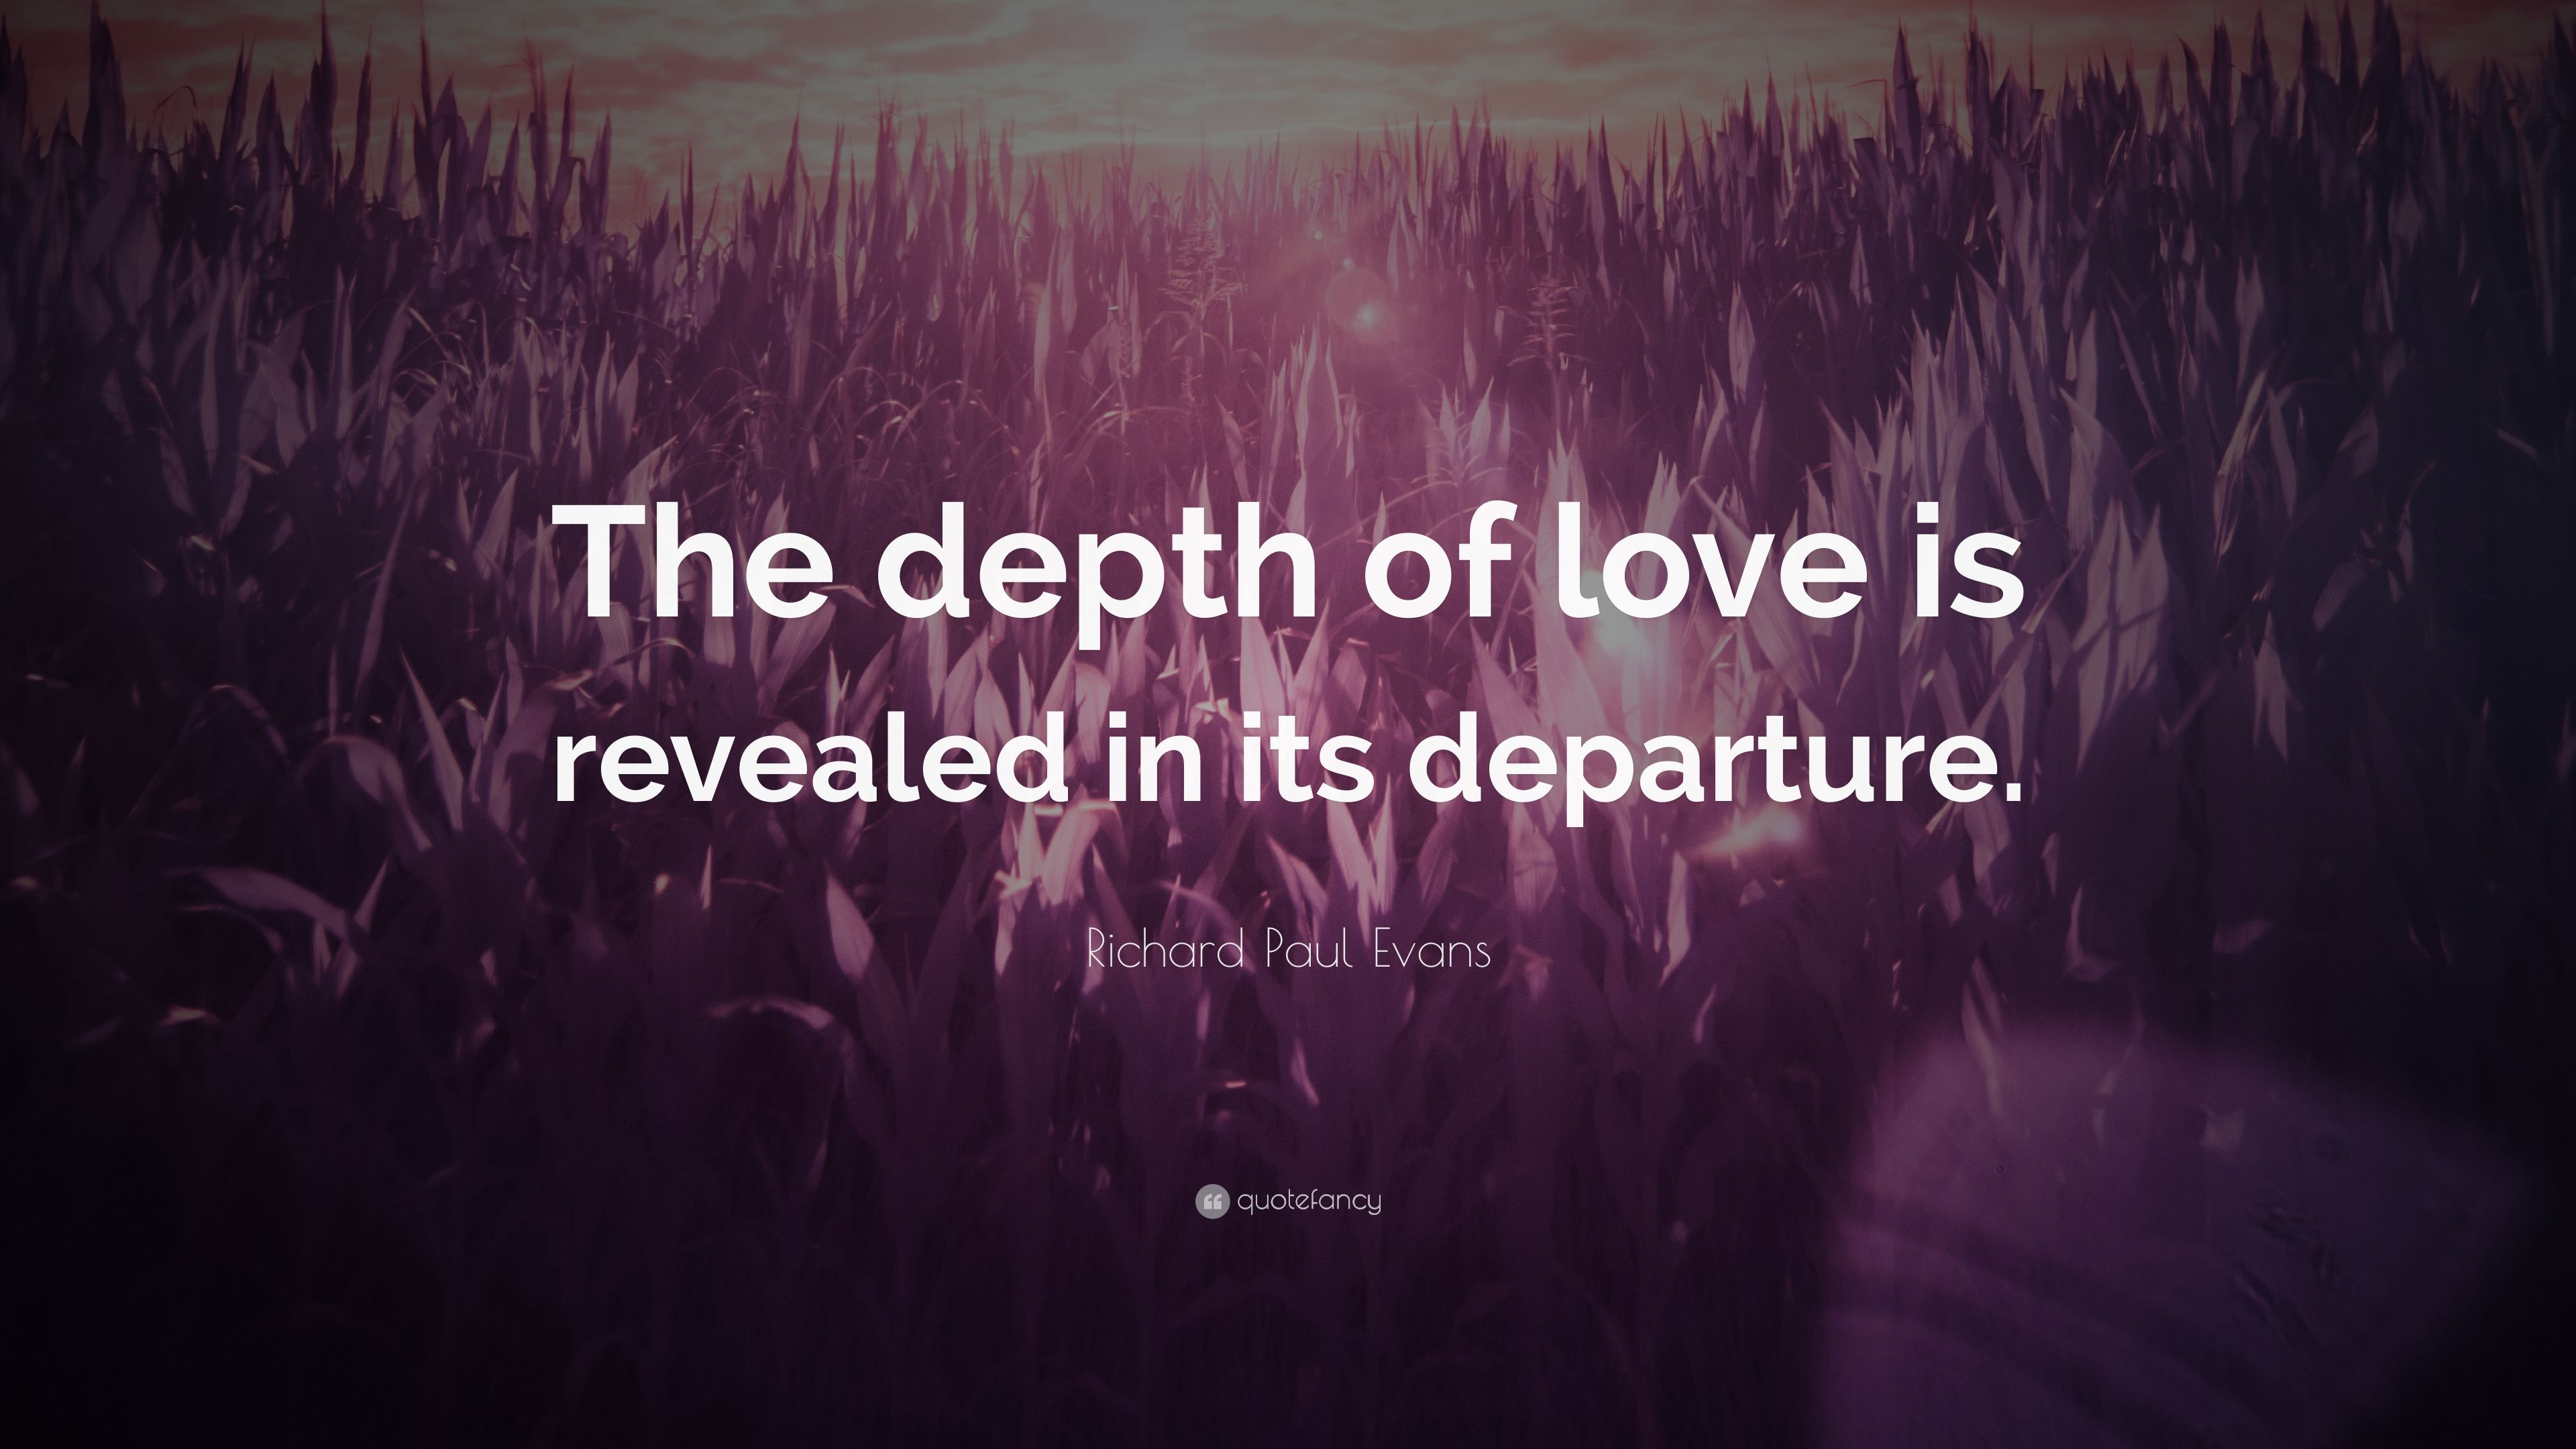 Richard Paul Evans Quote The Depth Of Love Is Revealed In Its Departure 7 Wallpapers Quotefancy